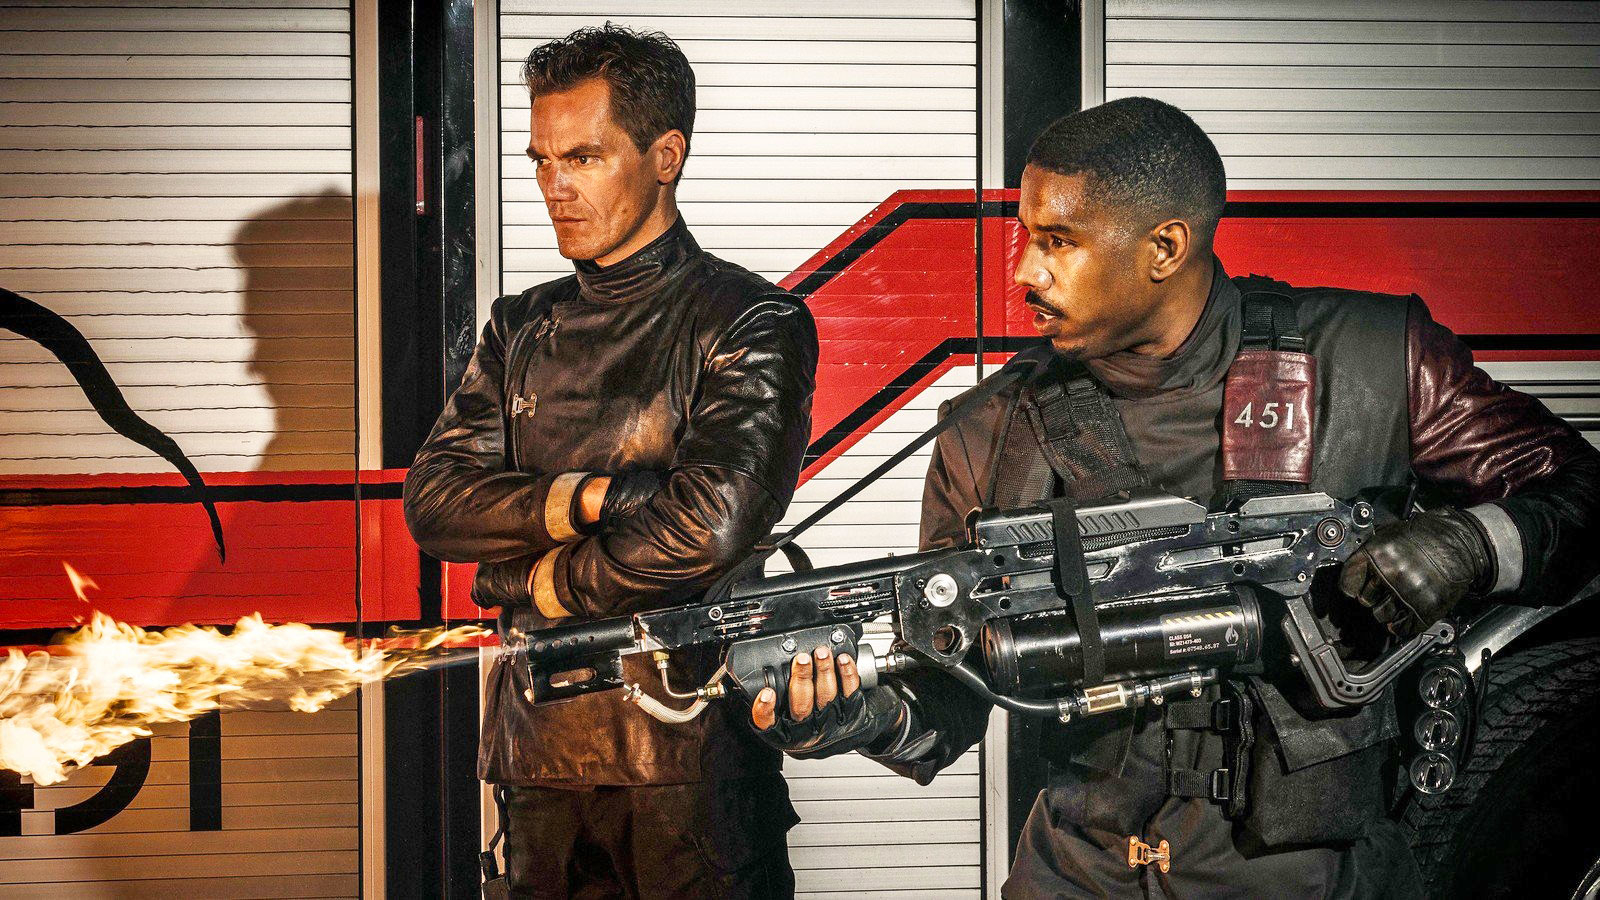 farenheit 451 review Fahrenheit 451 is television's latest book adaptation is michael b  fahrenheit  451 review: hbo adaptation could use some more heat.